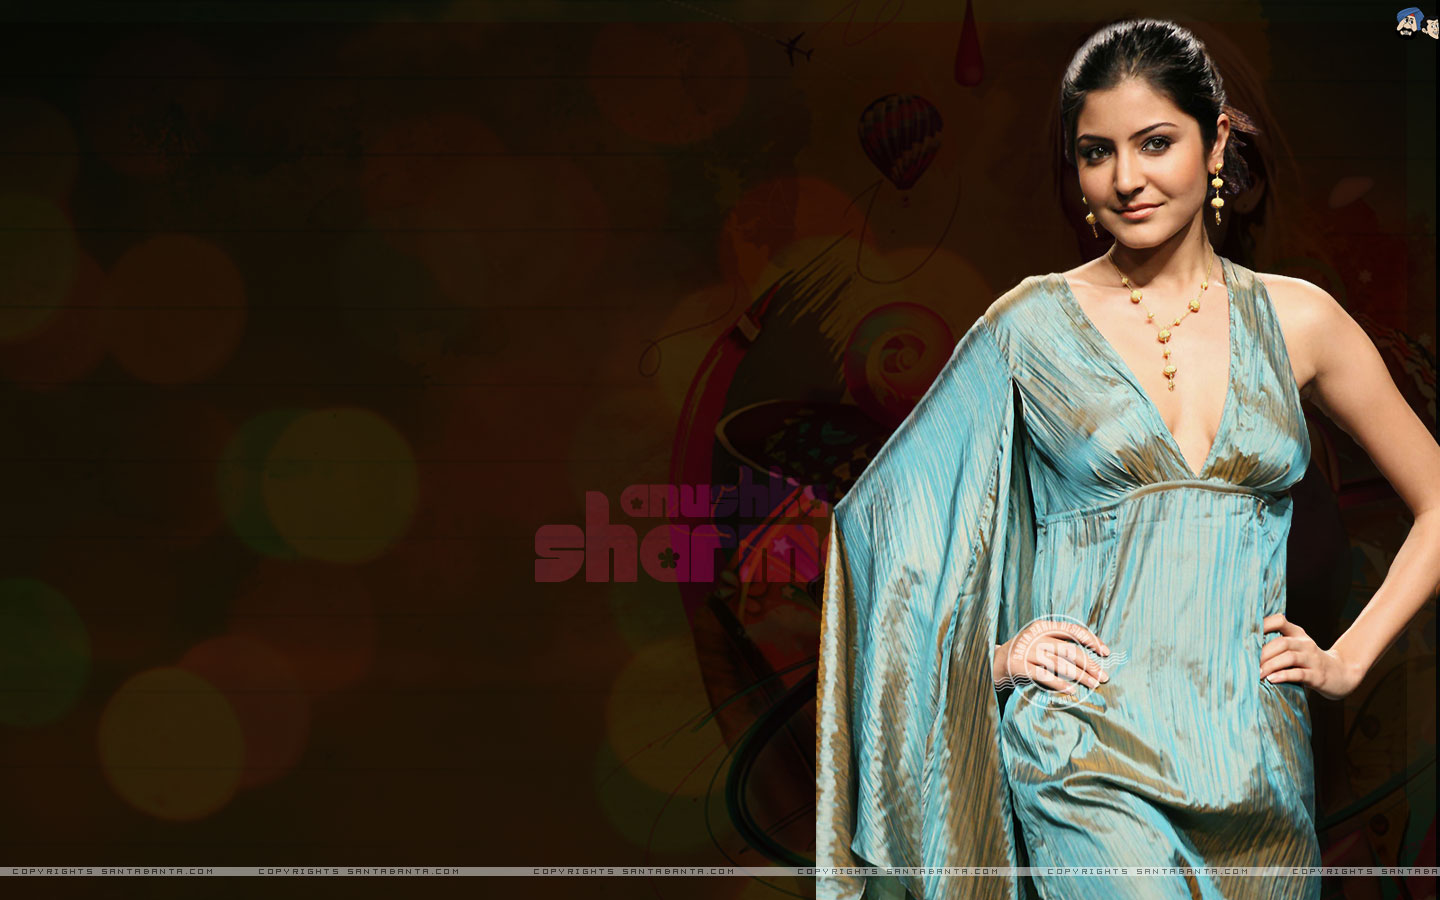 http://4.bp.blogspot.com/-B_0kQvQvVwc/UDM88dn6W9I/AAAAAAAAFVQ/CGoRVhIInbc/s1600/anushka-sharma-in-spicy-green-dress.jpg